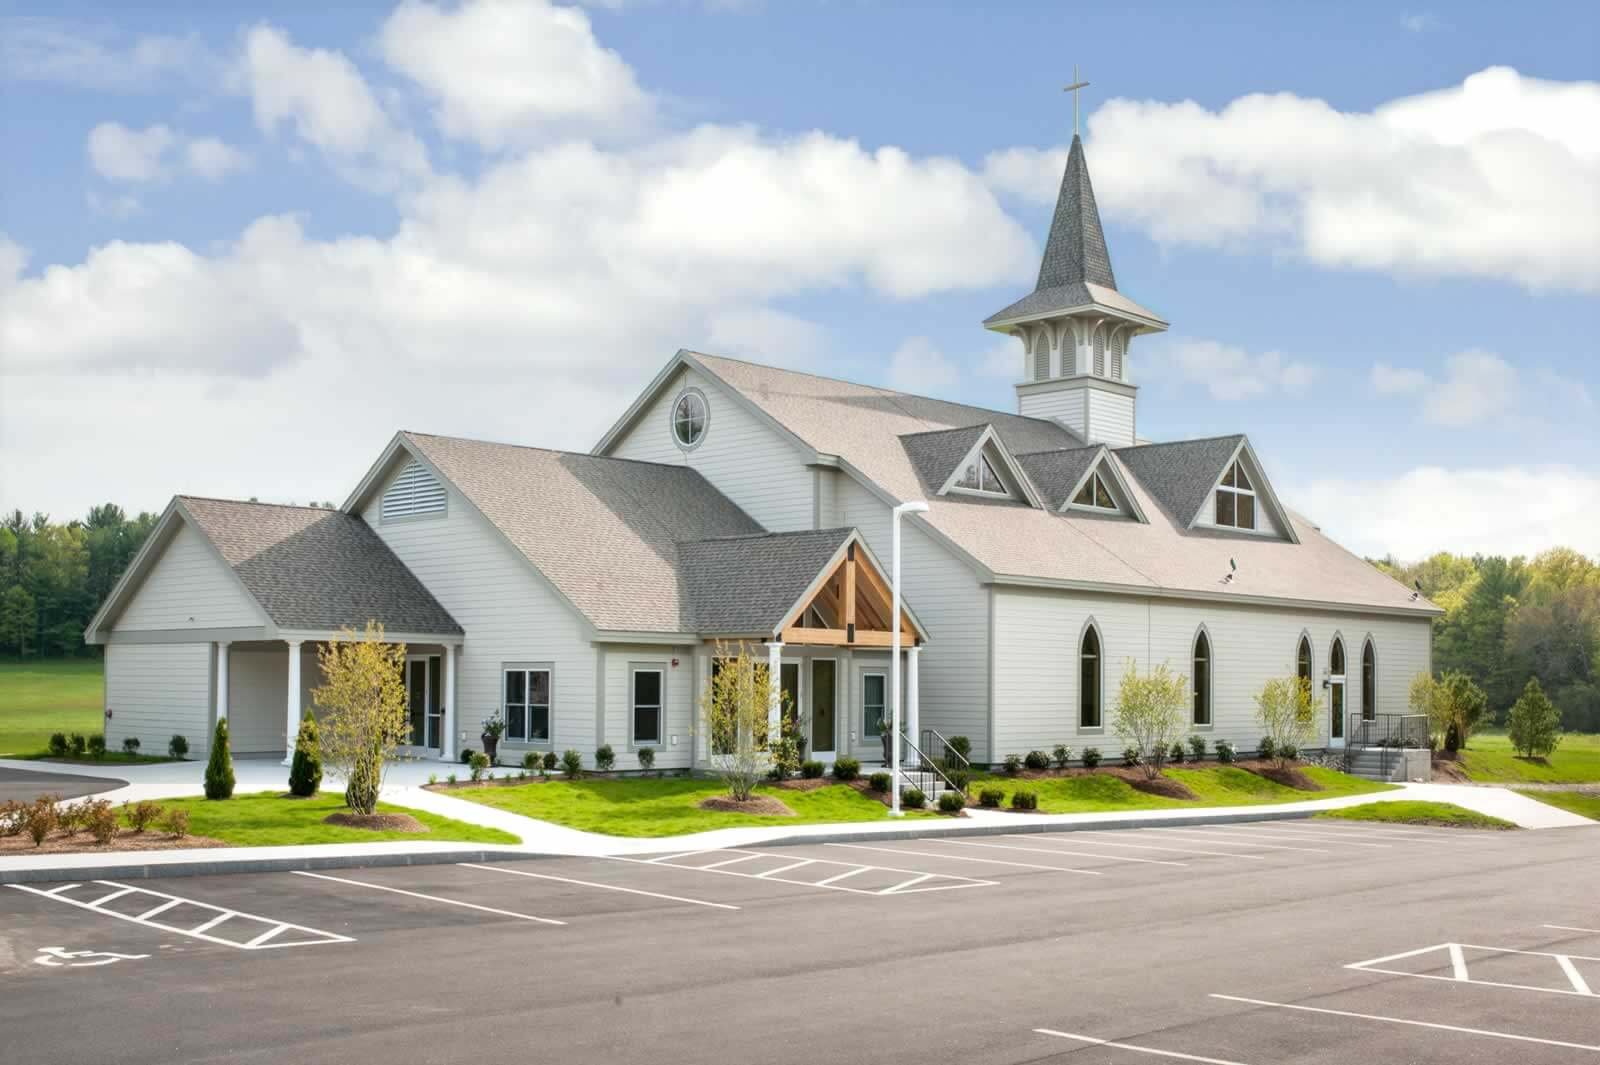 Our lady of the angel church wbrc architects engineers Interior designers lakewood ranch fl